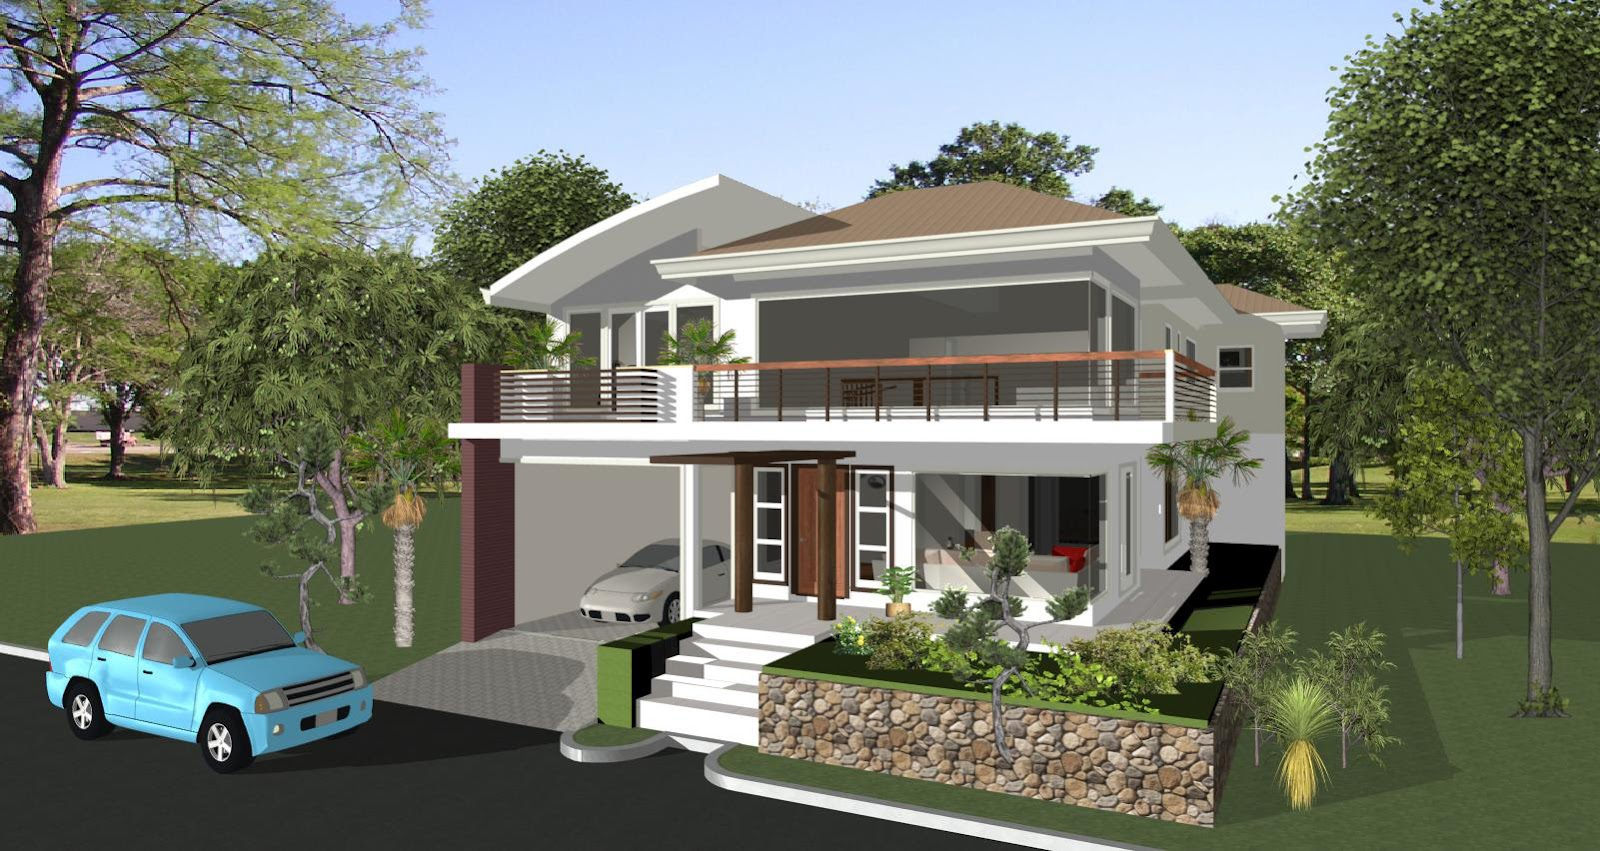 House designs in the philippines in iloilo by erecre group for Websites to design houses for free